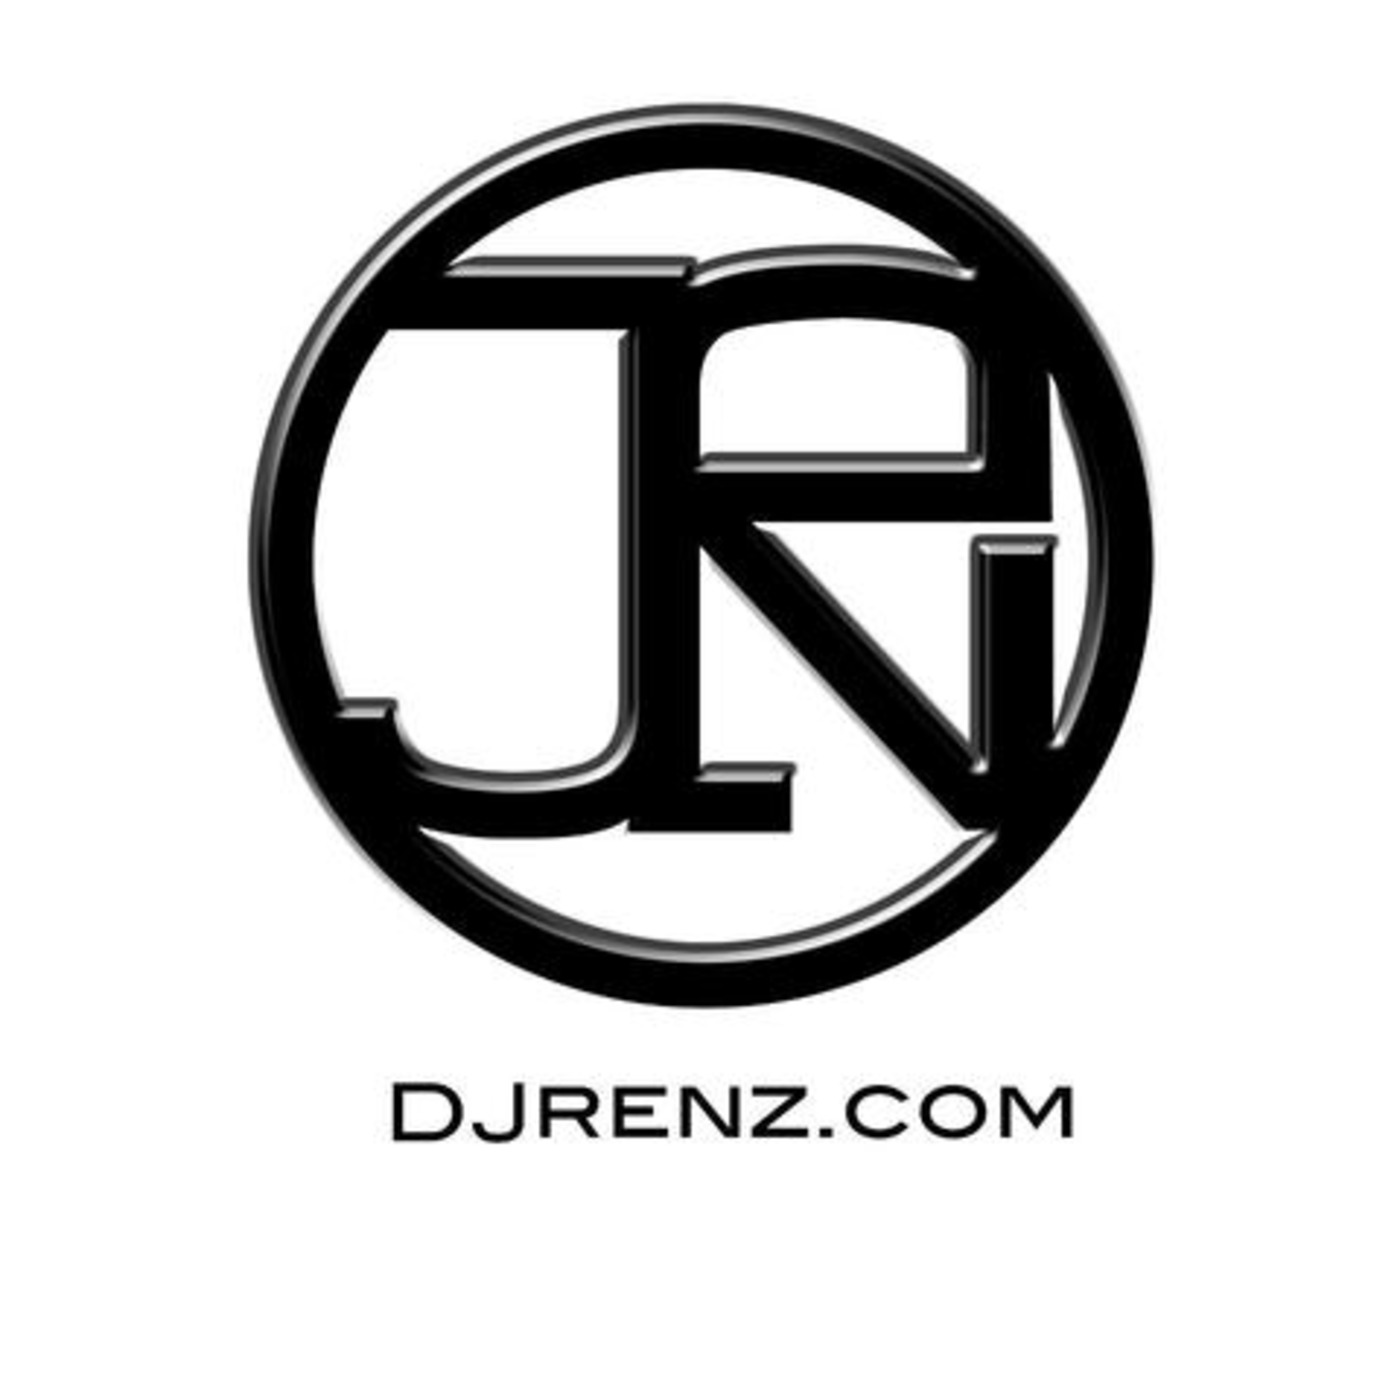 DJ Renz's Podcast